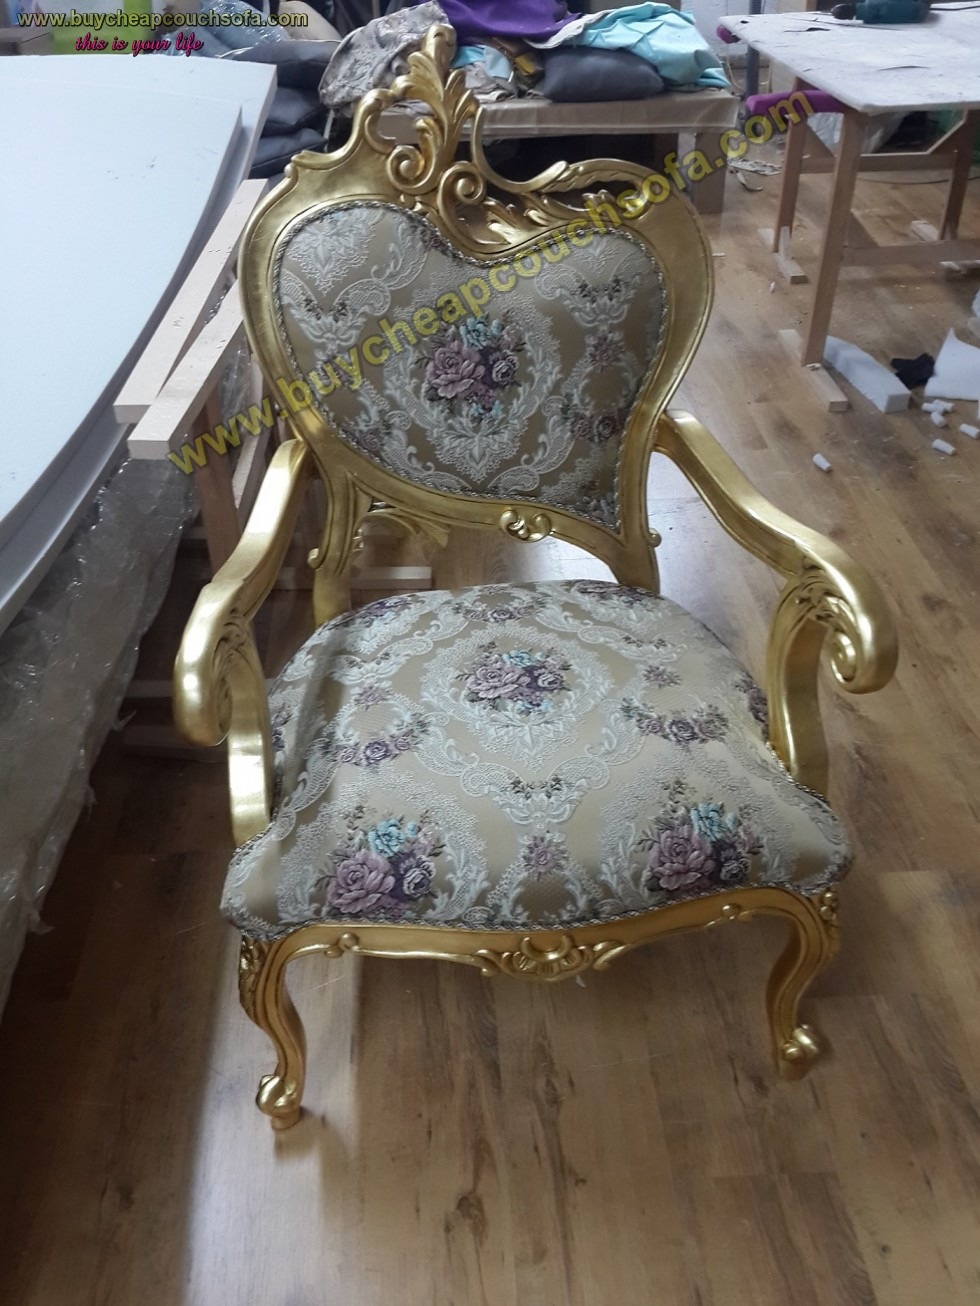 Kodu: 10238 - Luxury Curved Armchair Accent Chair Wooden Gold Leaf Polished